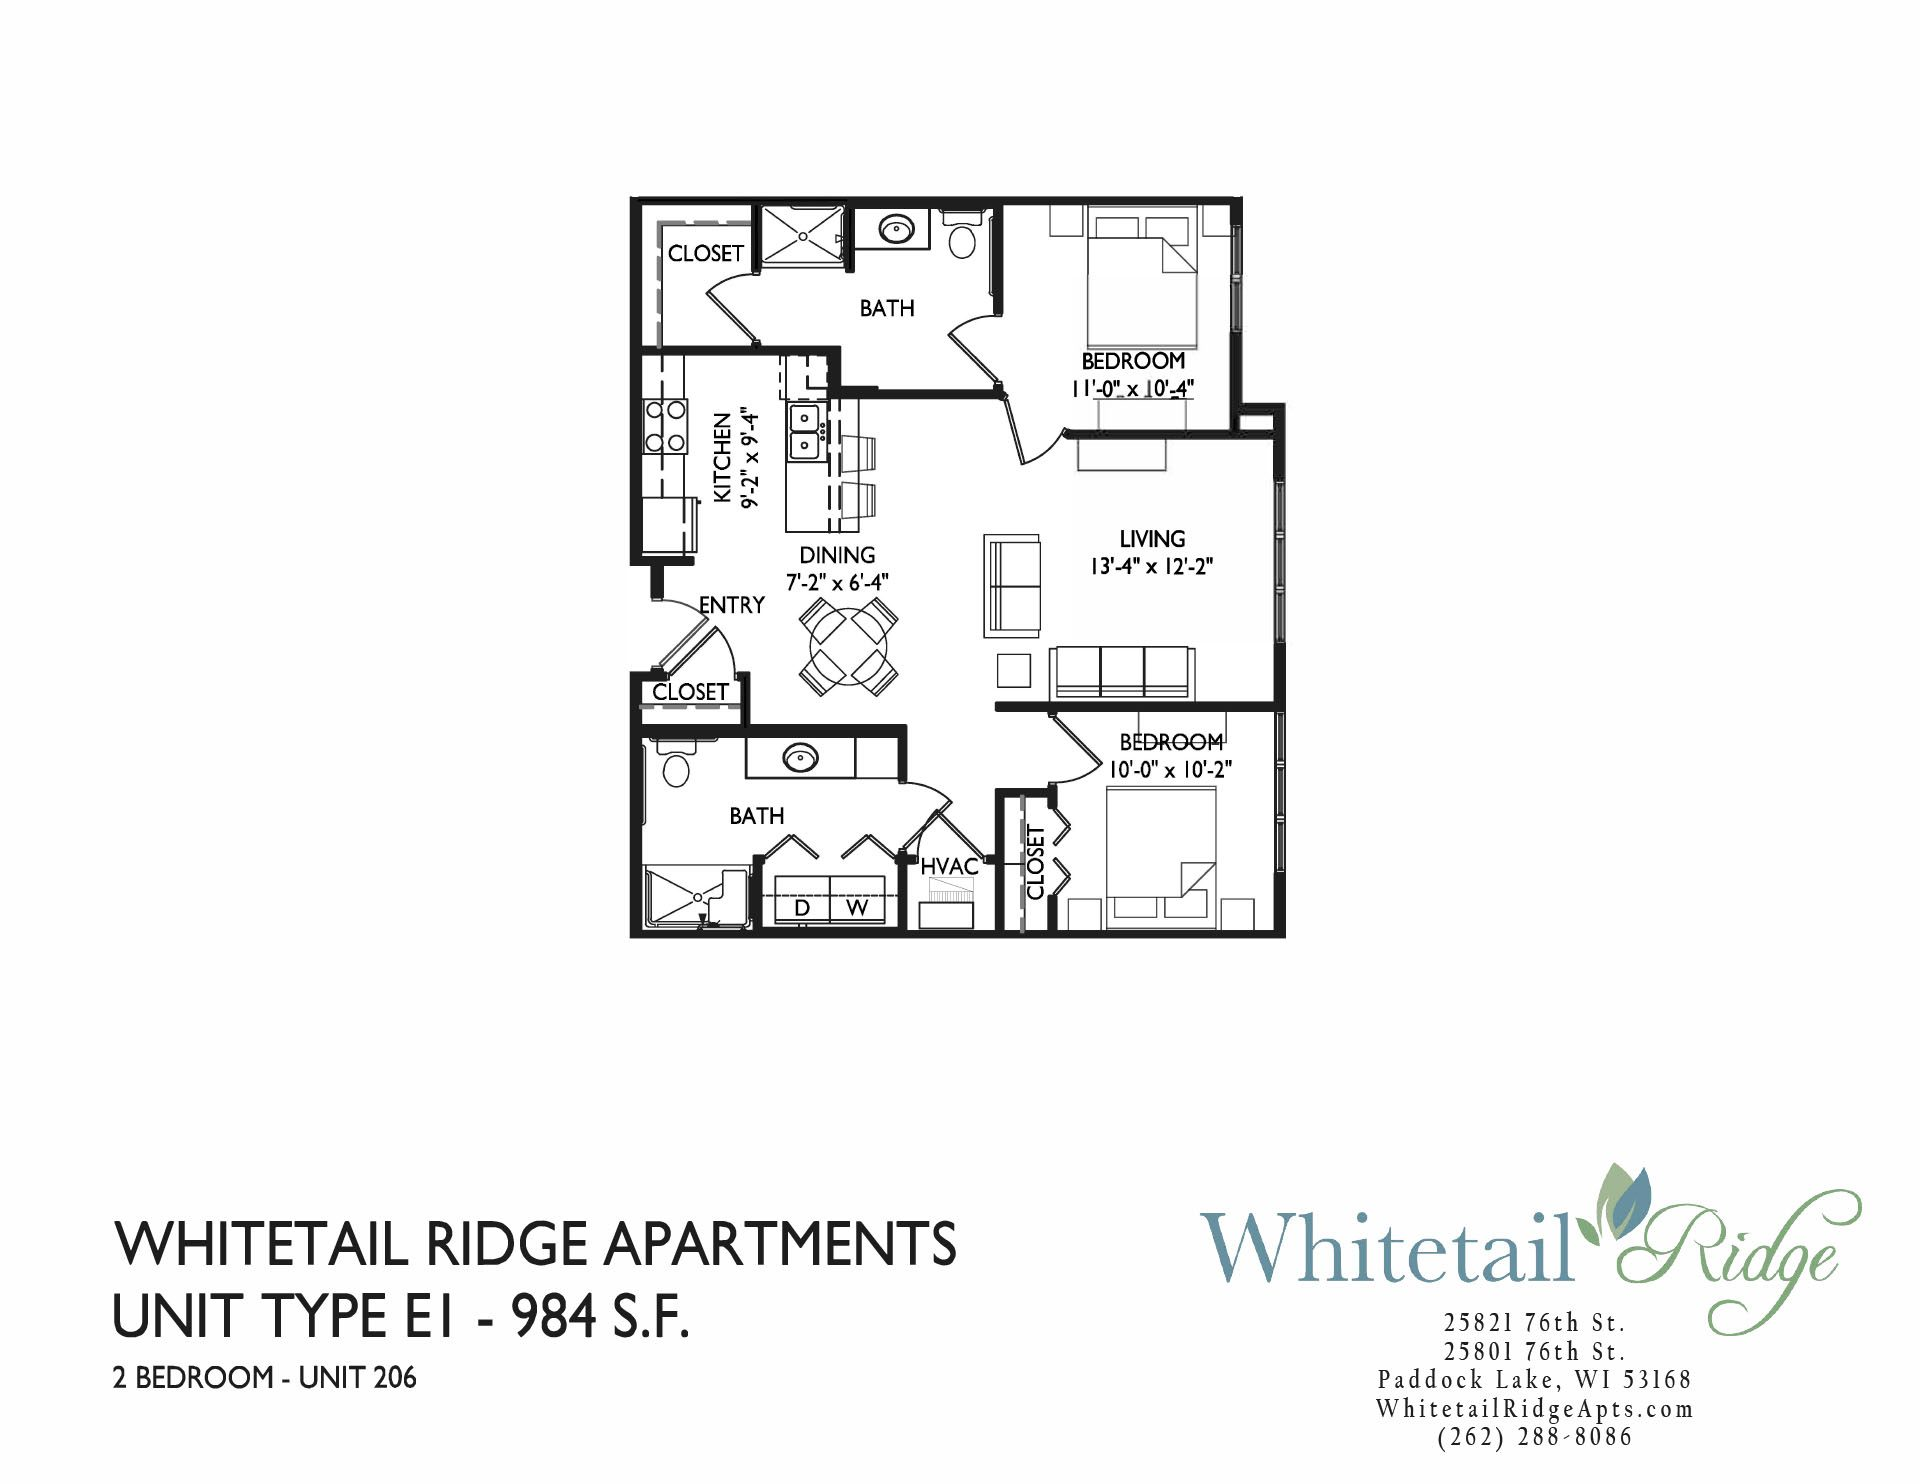 two bedroom senior apartments, two bedroom senior apartments in kenosha county, two bedroom senior apartments paddock lake wi